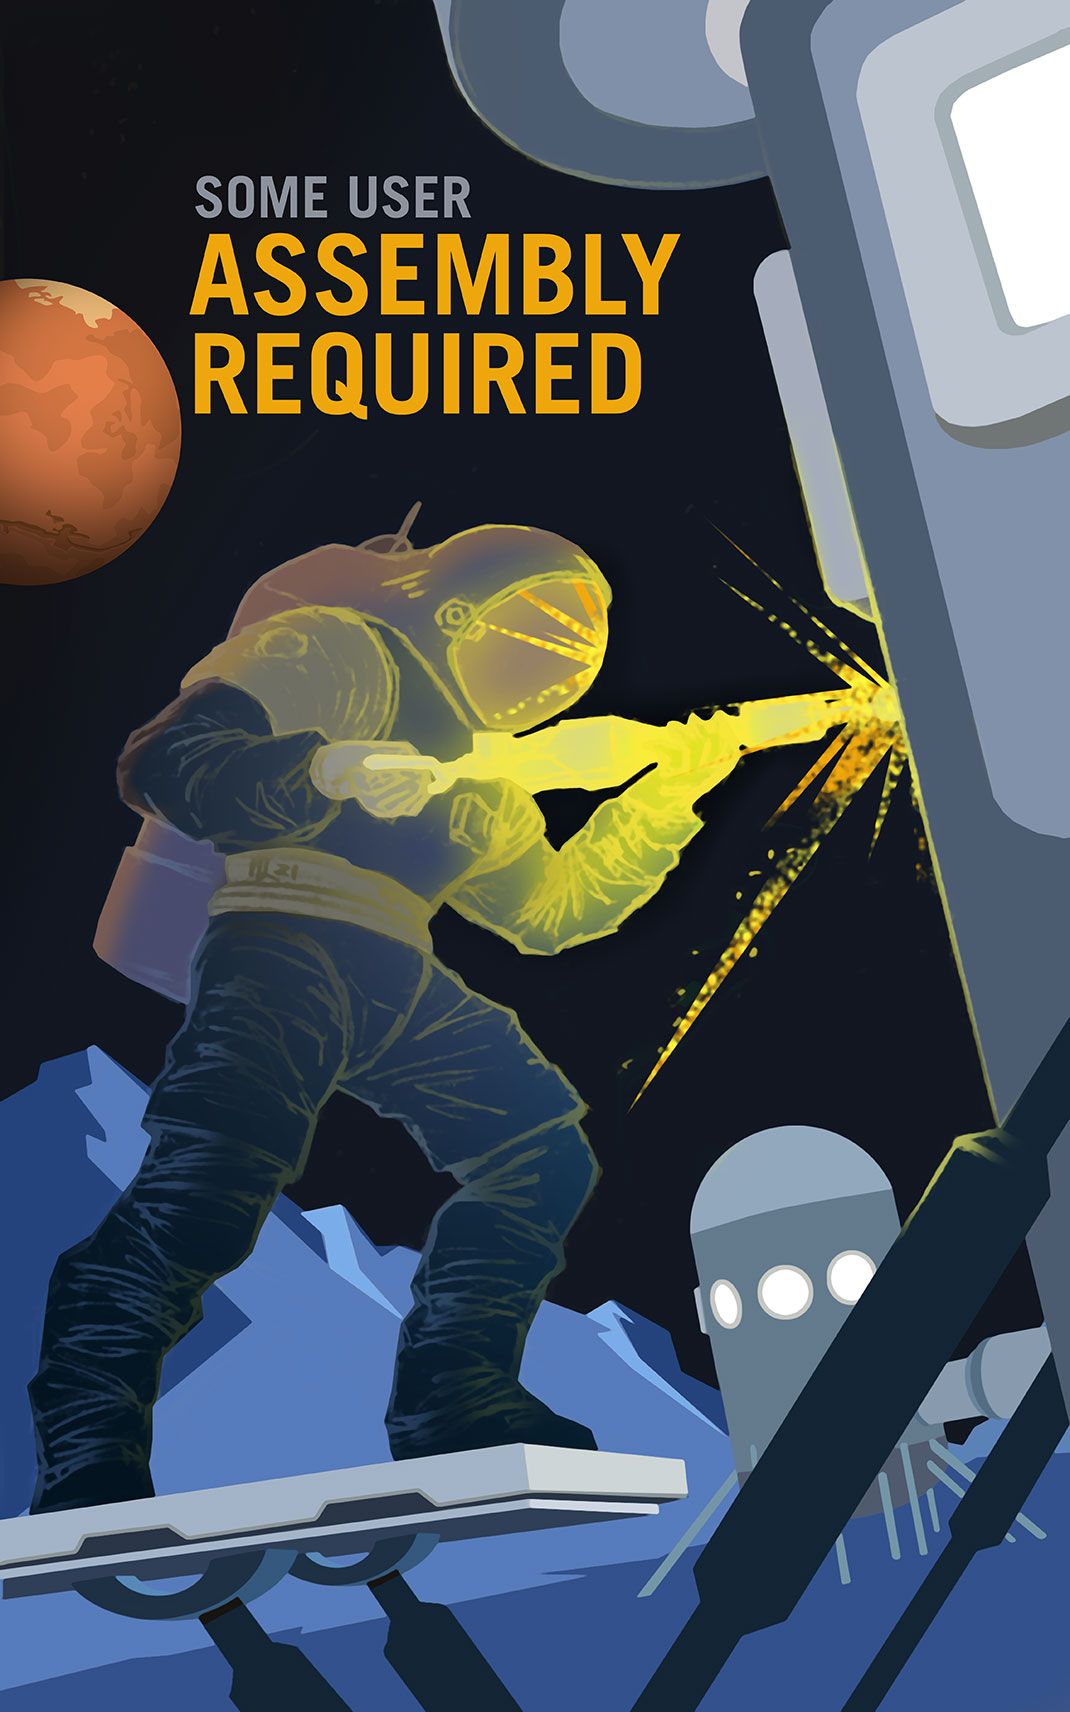 P07-Some-User-Assembly-Required-NASA-Recruitment-Poster